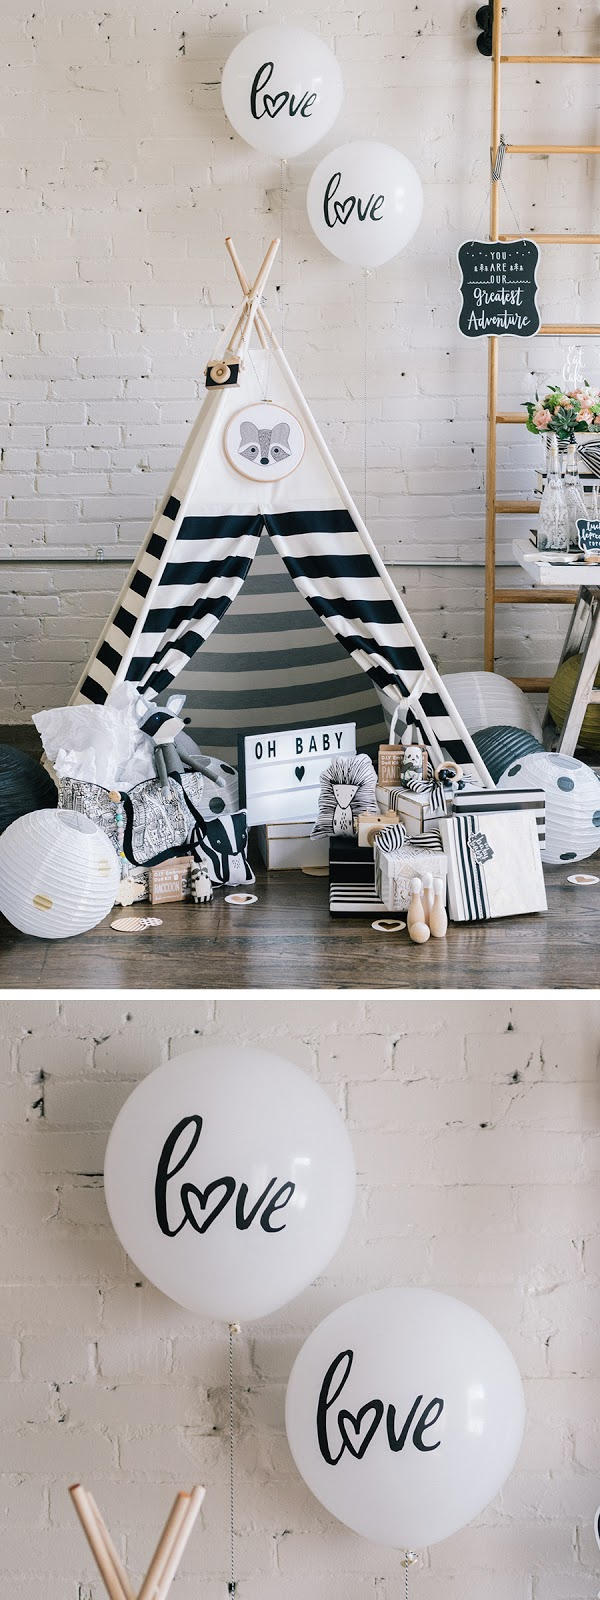 We love to party! Party decorating inspiration and supplies from Creative Bag.